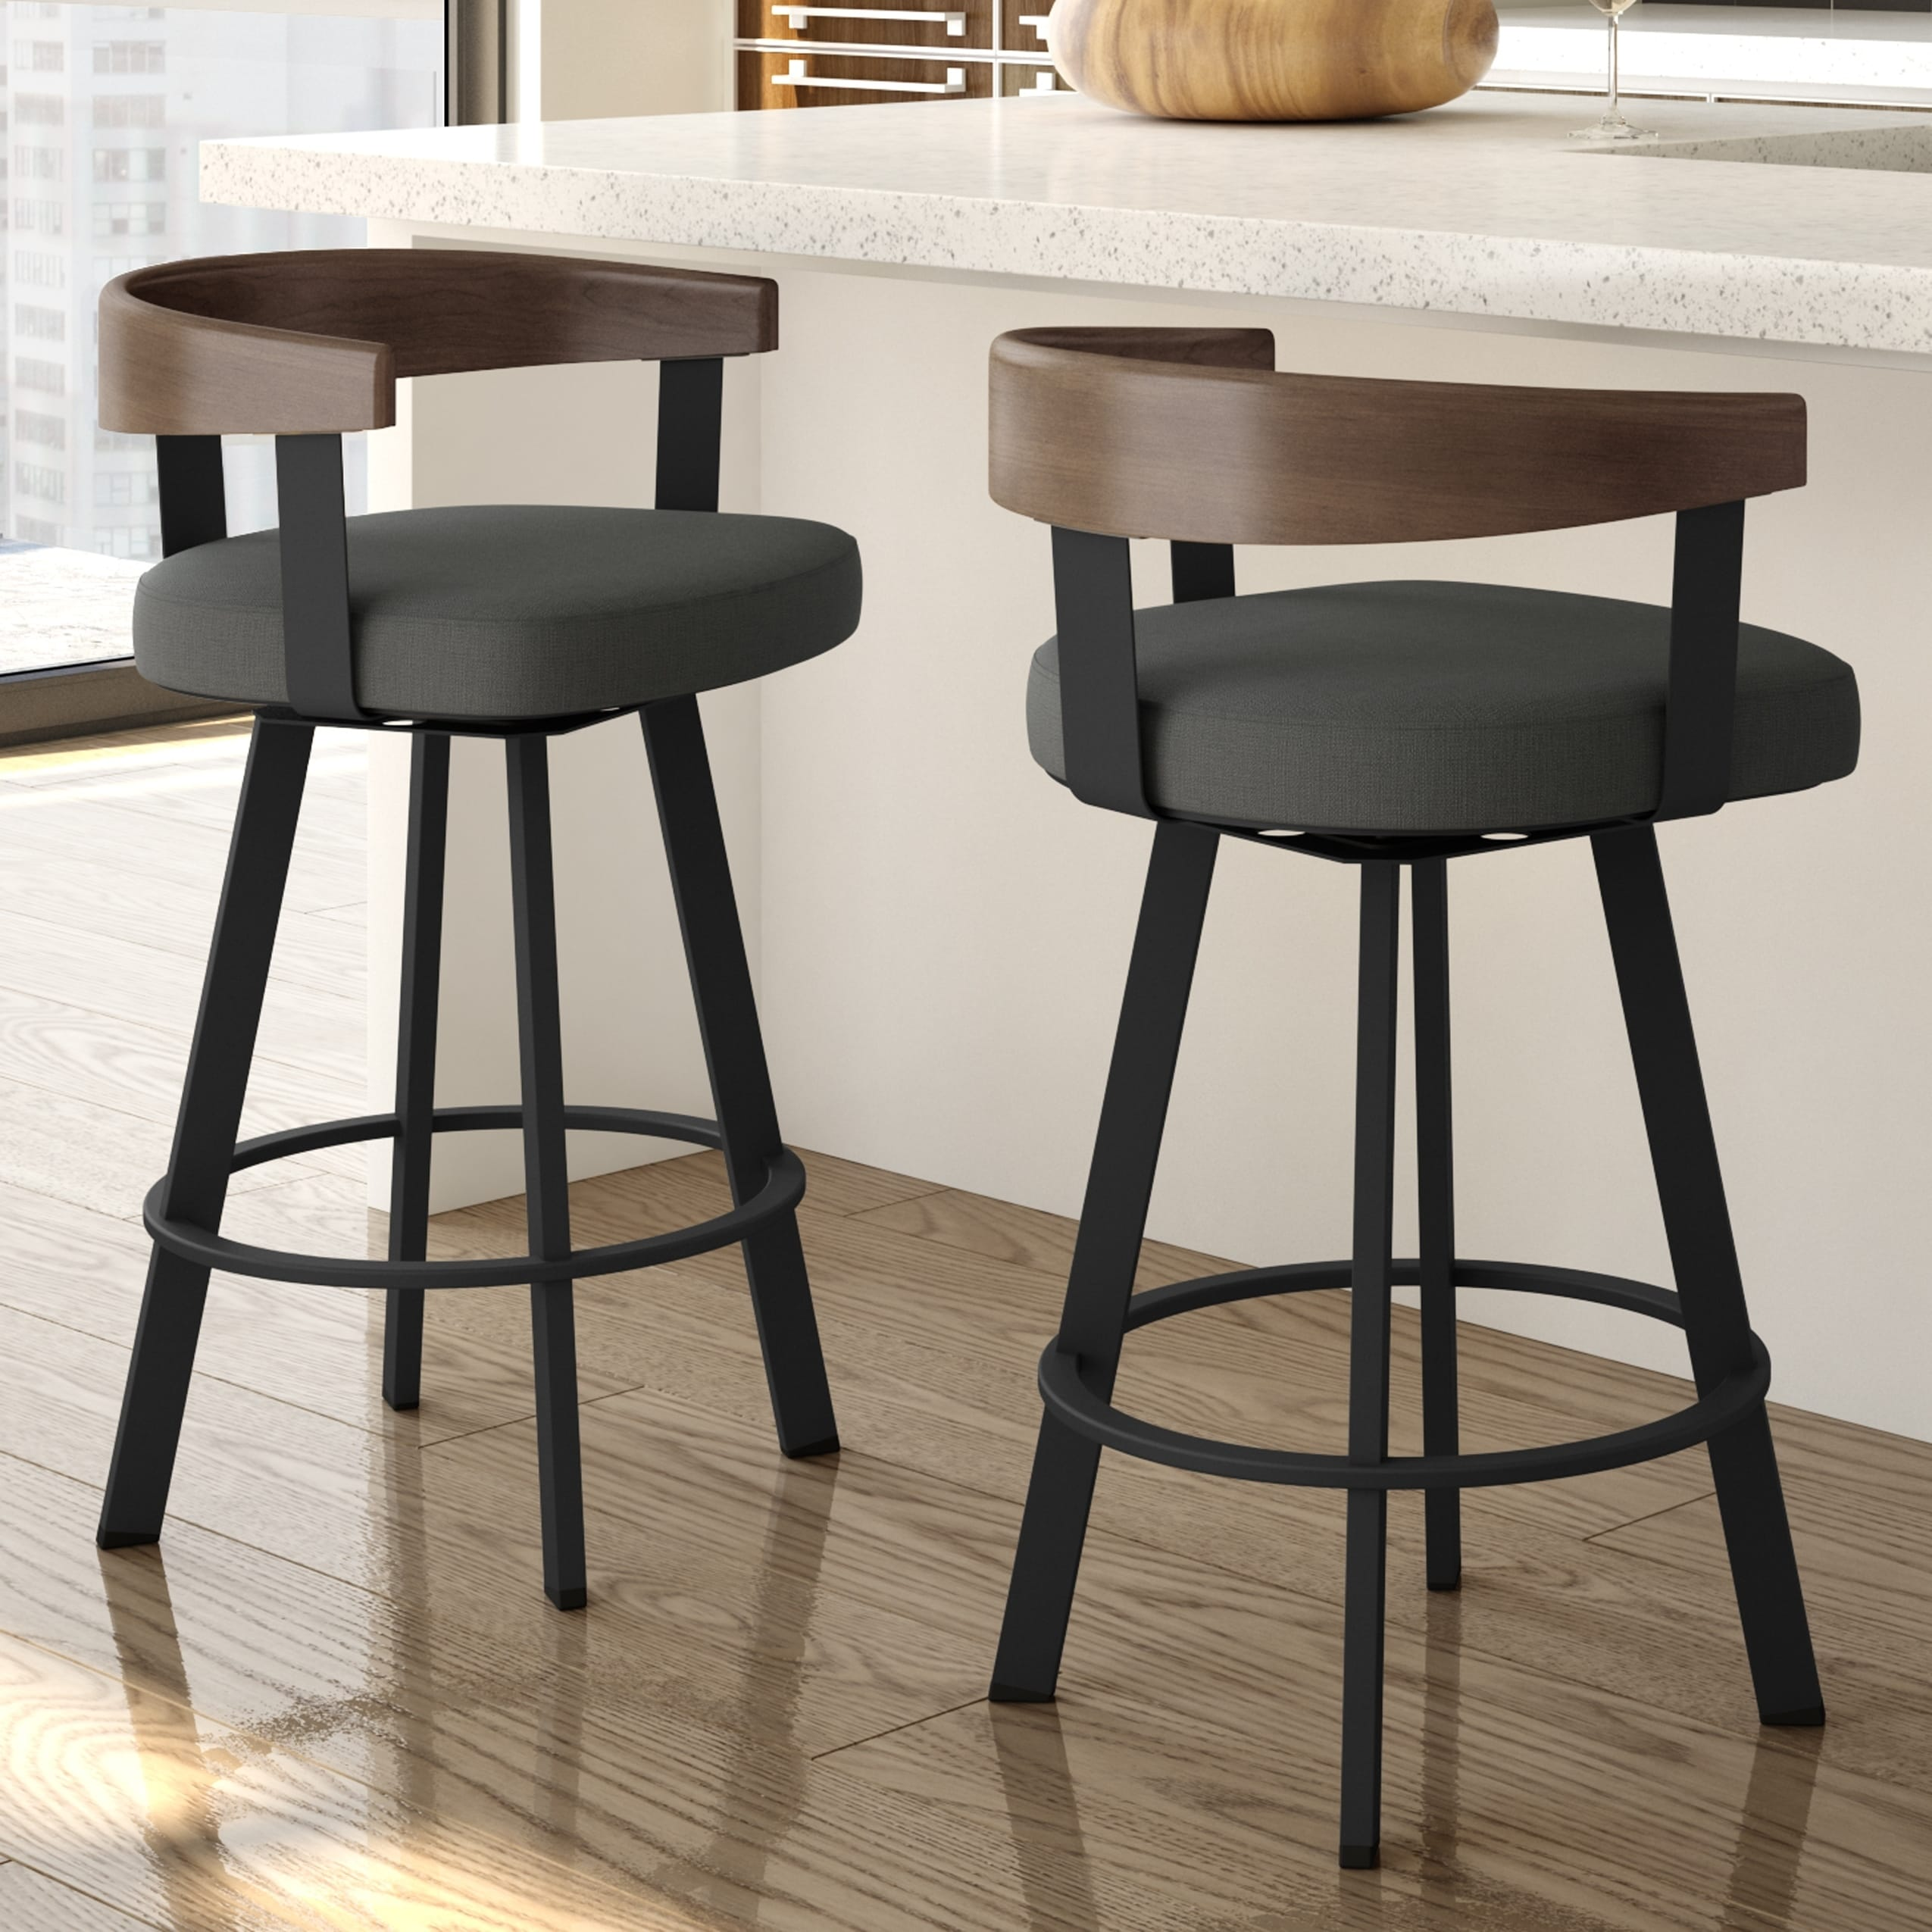 Awesome Buy Counter Height 23 28 In Counter Bar Stools Online Caraccident5 Cool Chair Designs And Ideas Caraccident5Info